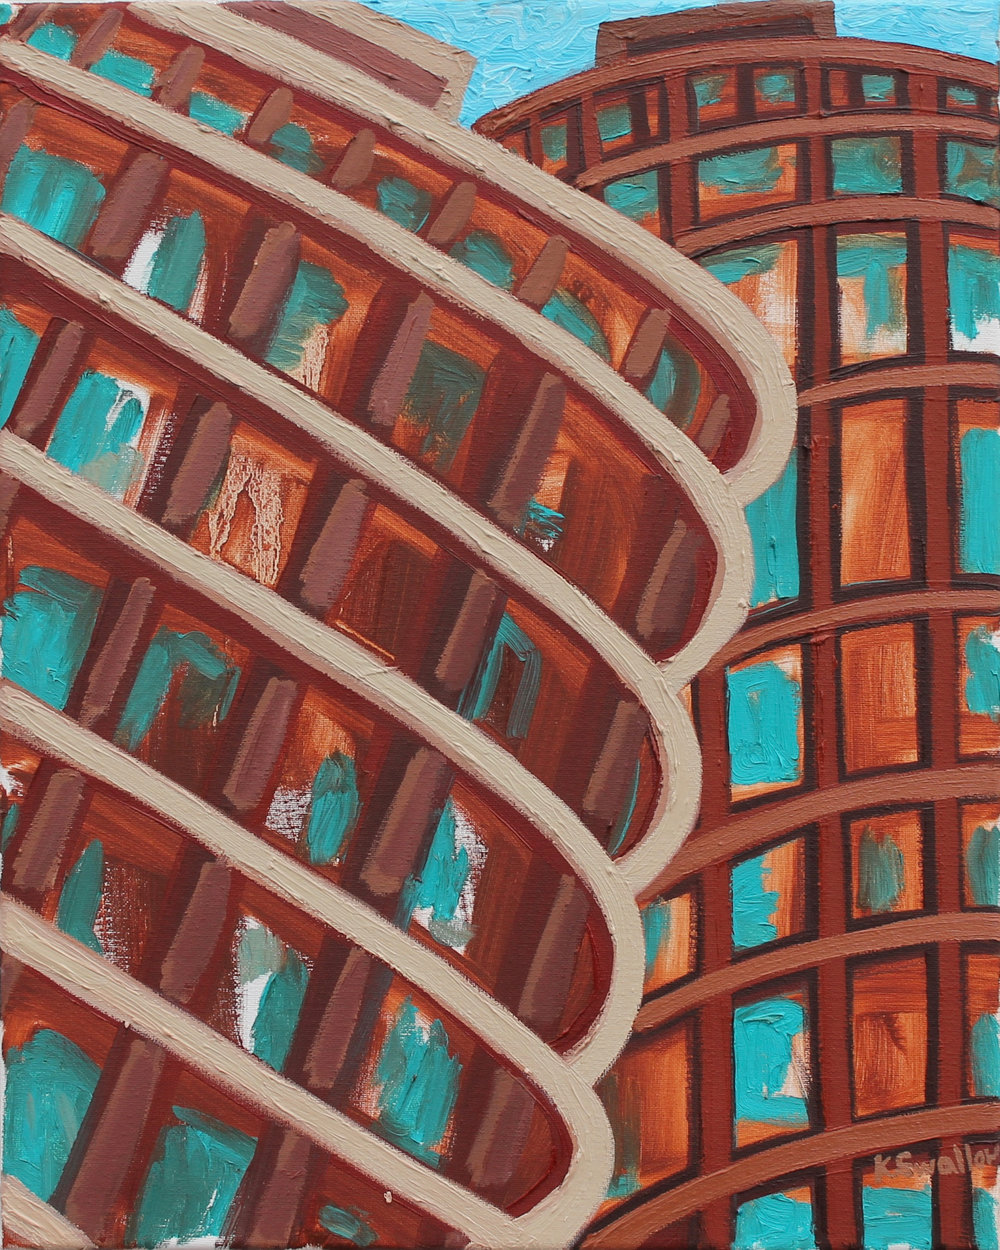 Marina Towers #1, oil on canvas, 20x16, 2017, AVAILABLE.jpg